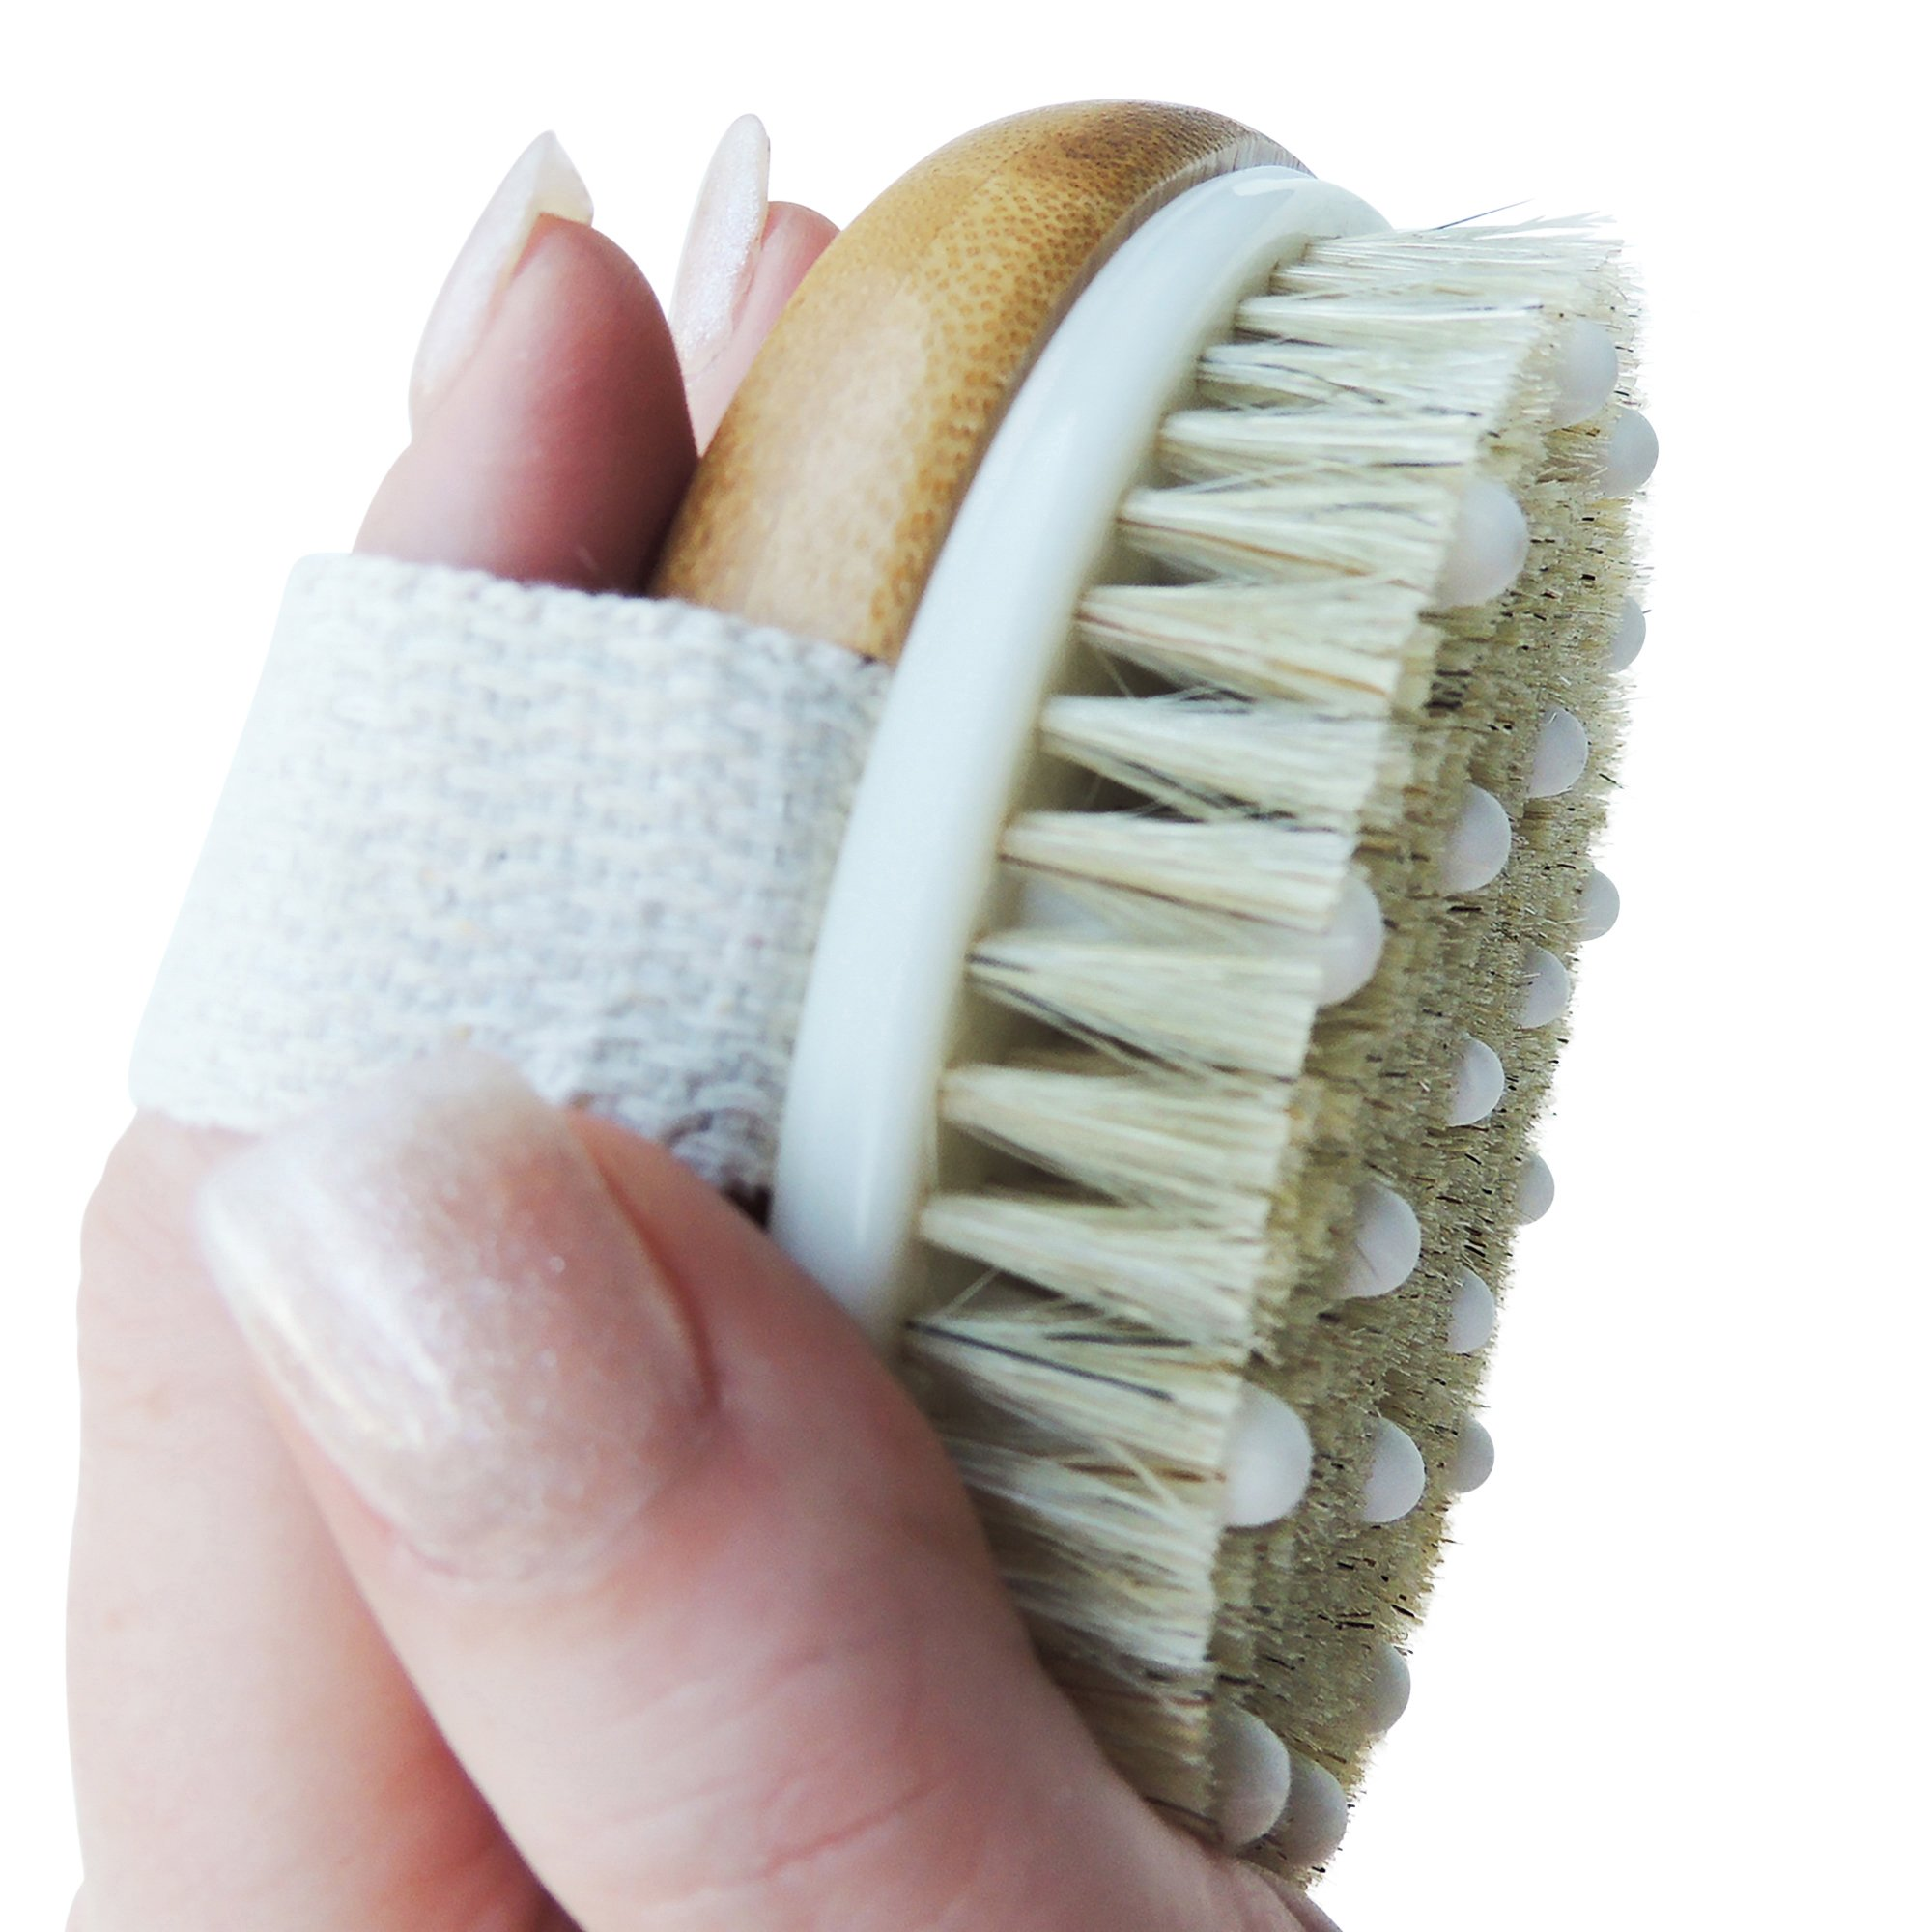 Anti-Cellulite Body Brush for Dry Brushing by Ozziko - 100% Natural Bristles. Attachable Long Bamboo Handle